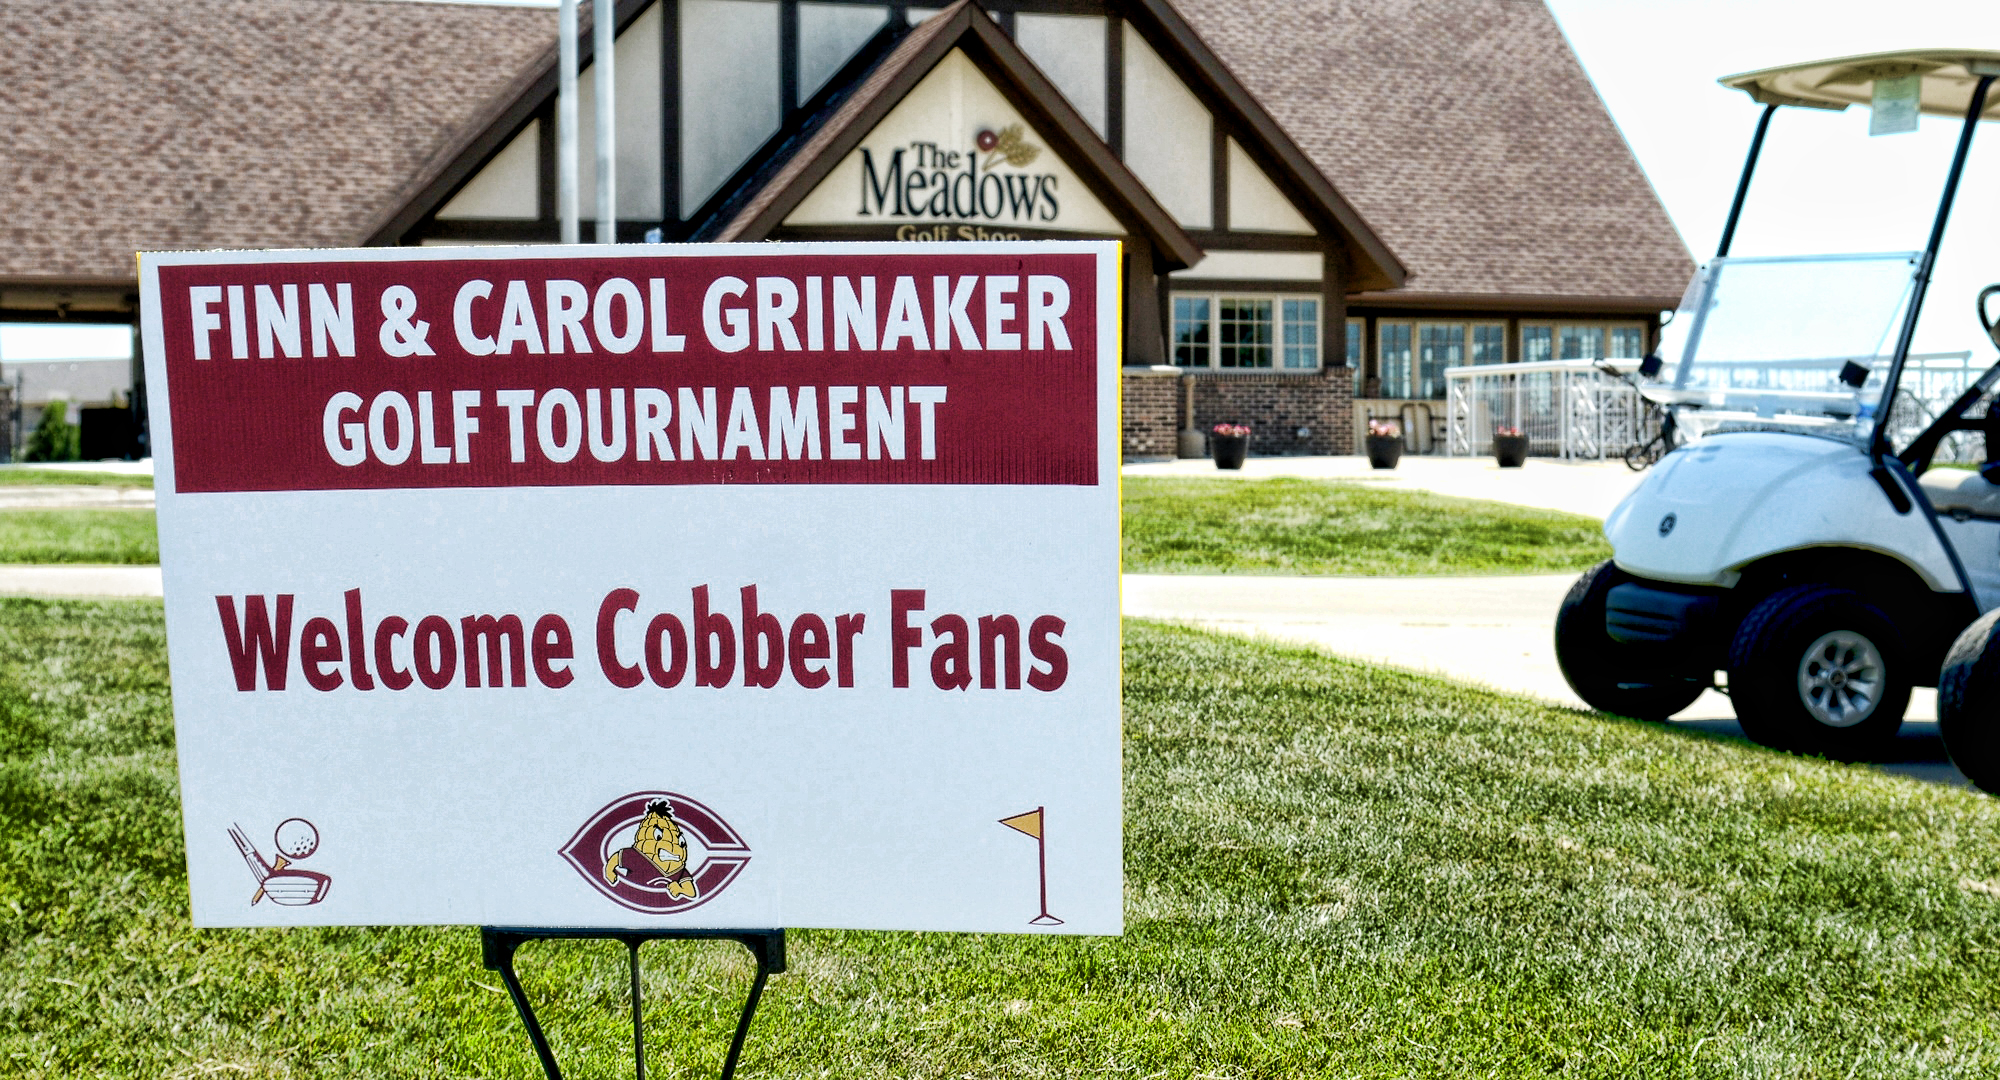 Finn Grinaker Golf Tournament